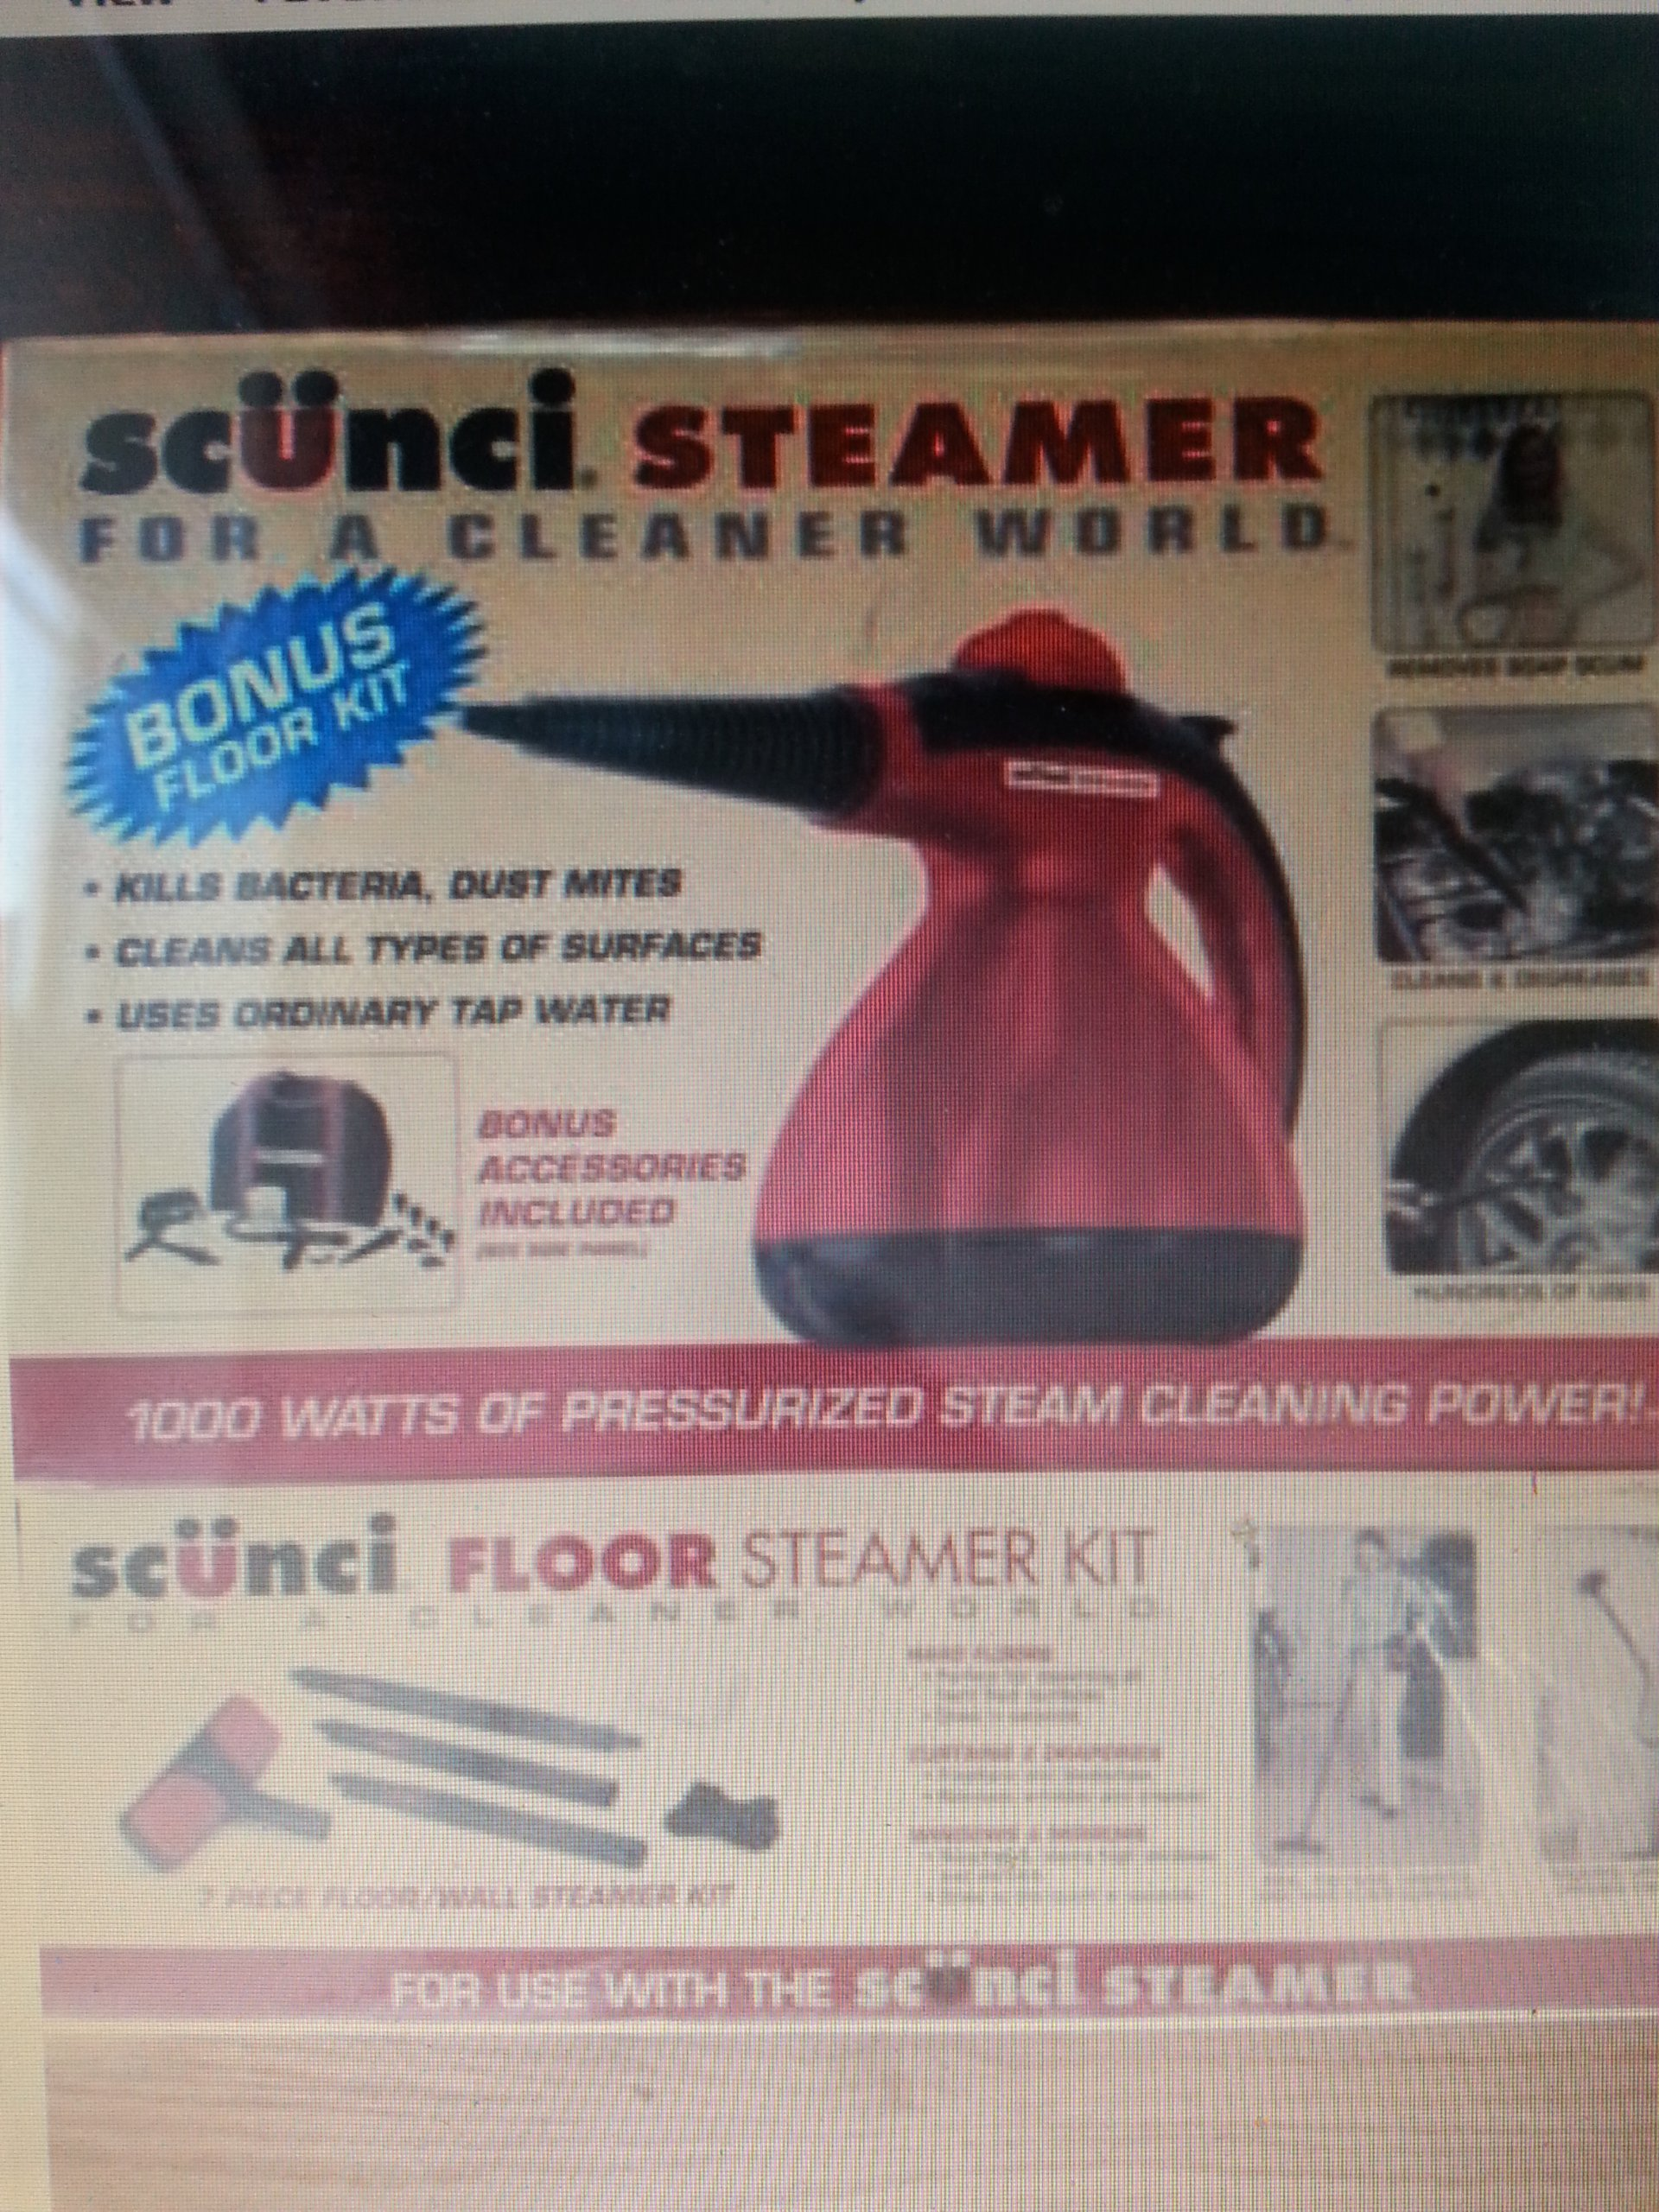 Scunci Hand Held Steamer Kit SS1000 ASOT Home Cleaner